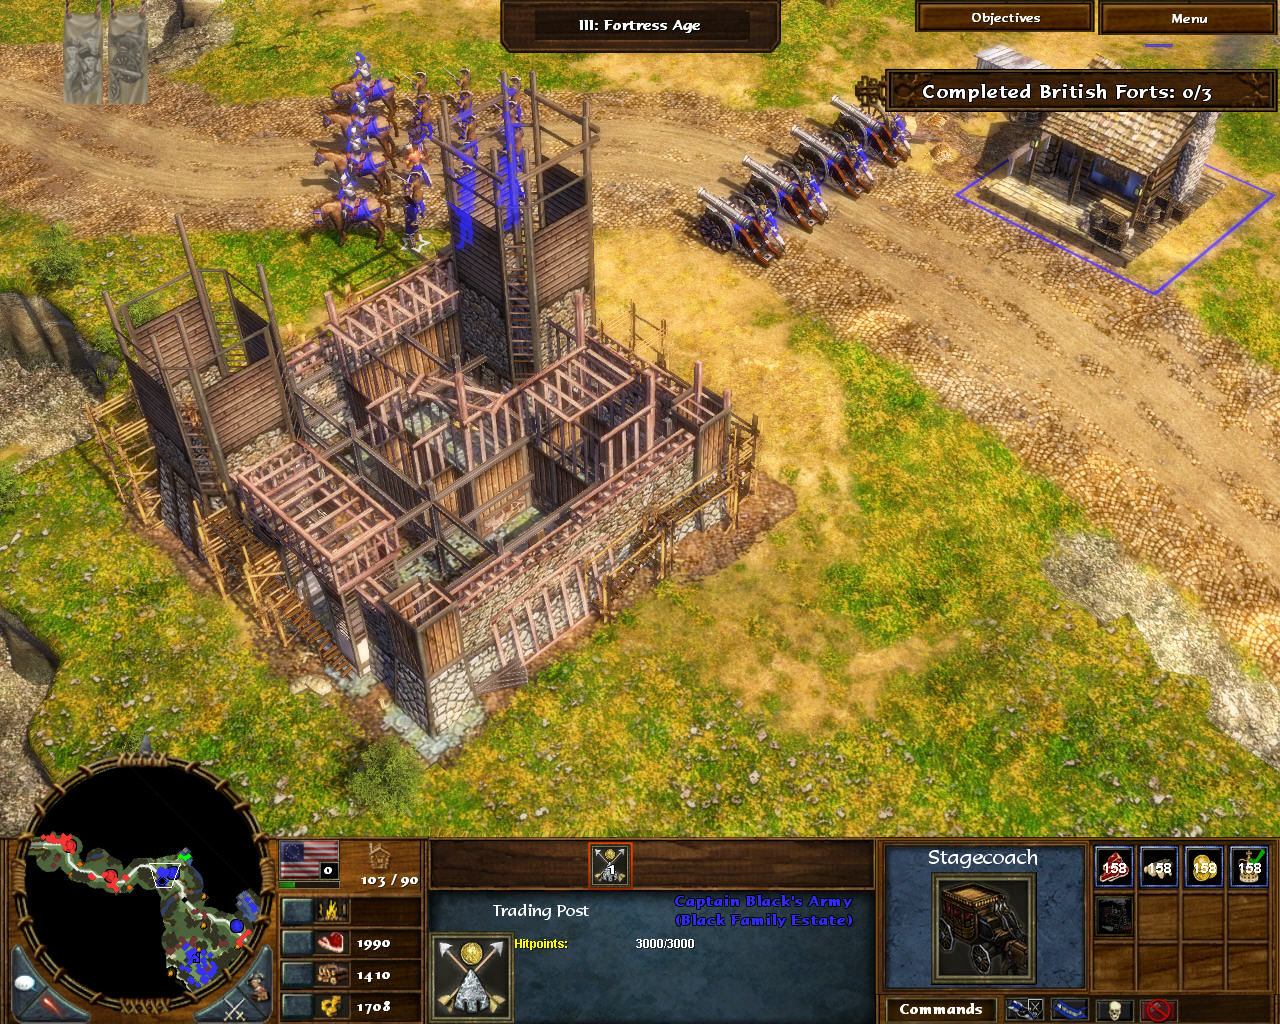 Age of Empires III: The WarChiefs Screenshots for Windows - MobyGames